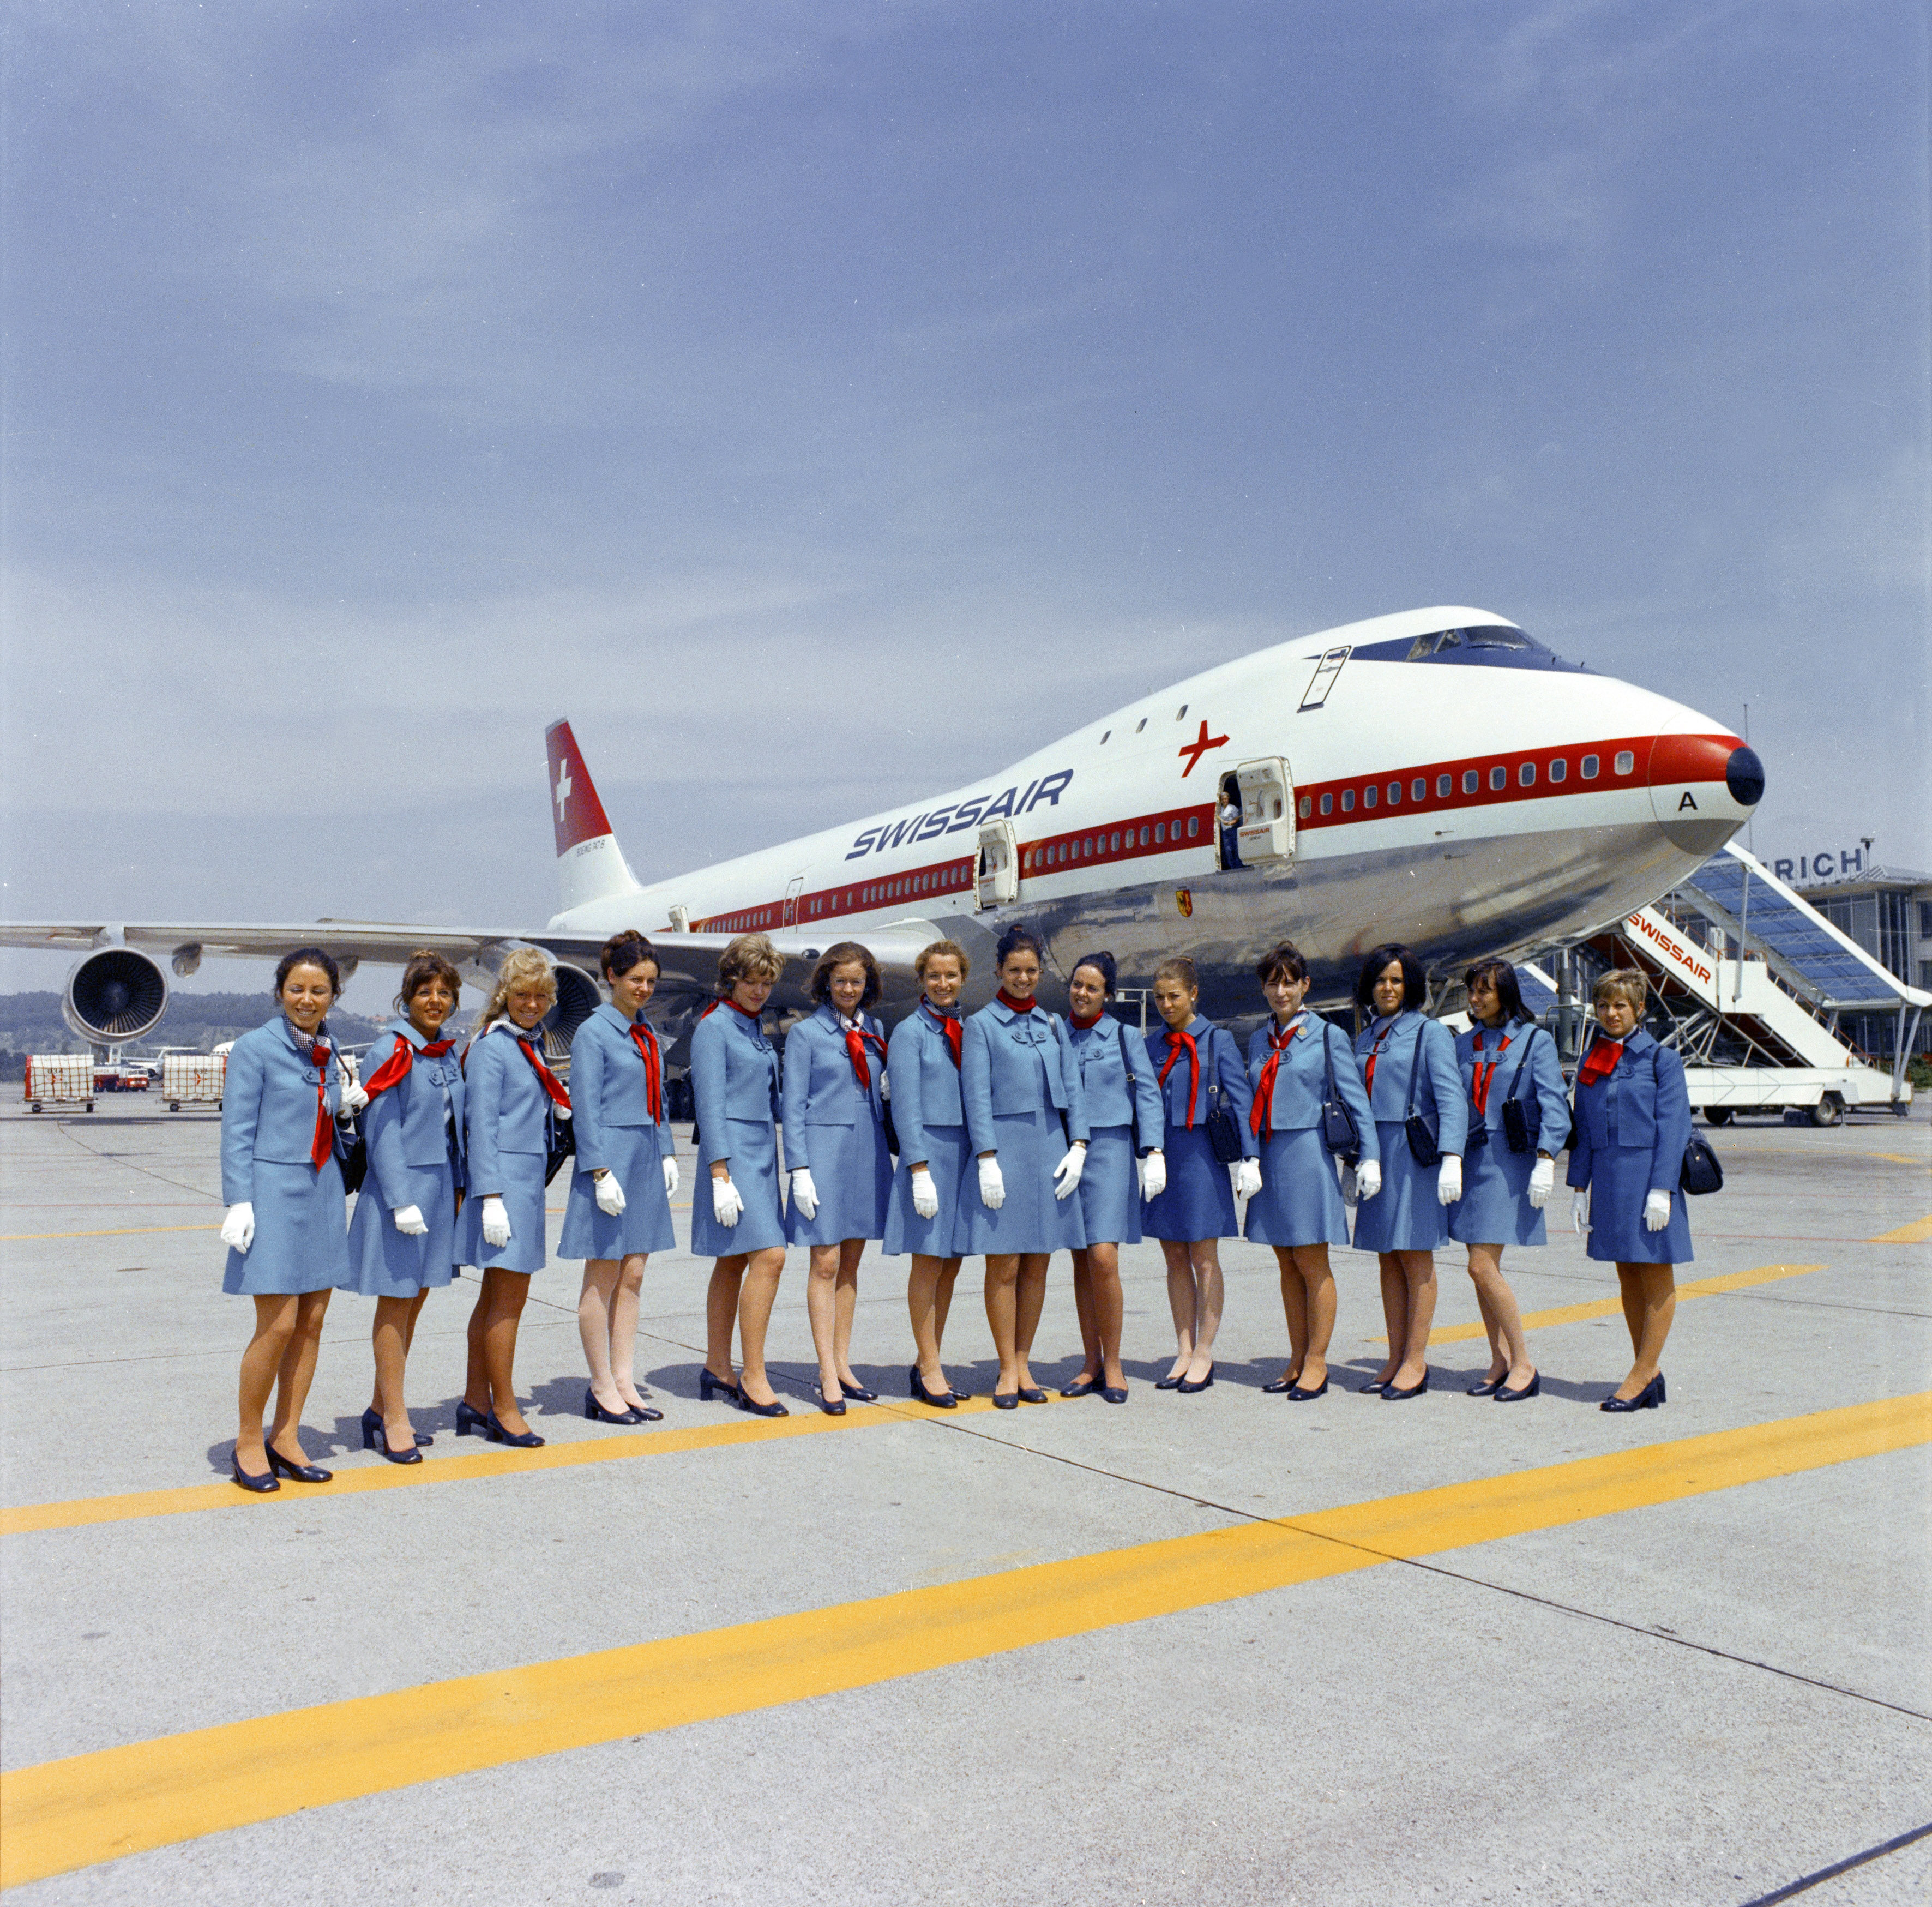 Successful candidates of a flight attendant course line up in front of a Boeing 747 at Zurich in 1971